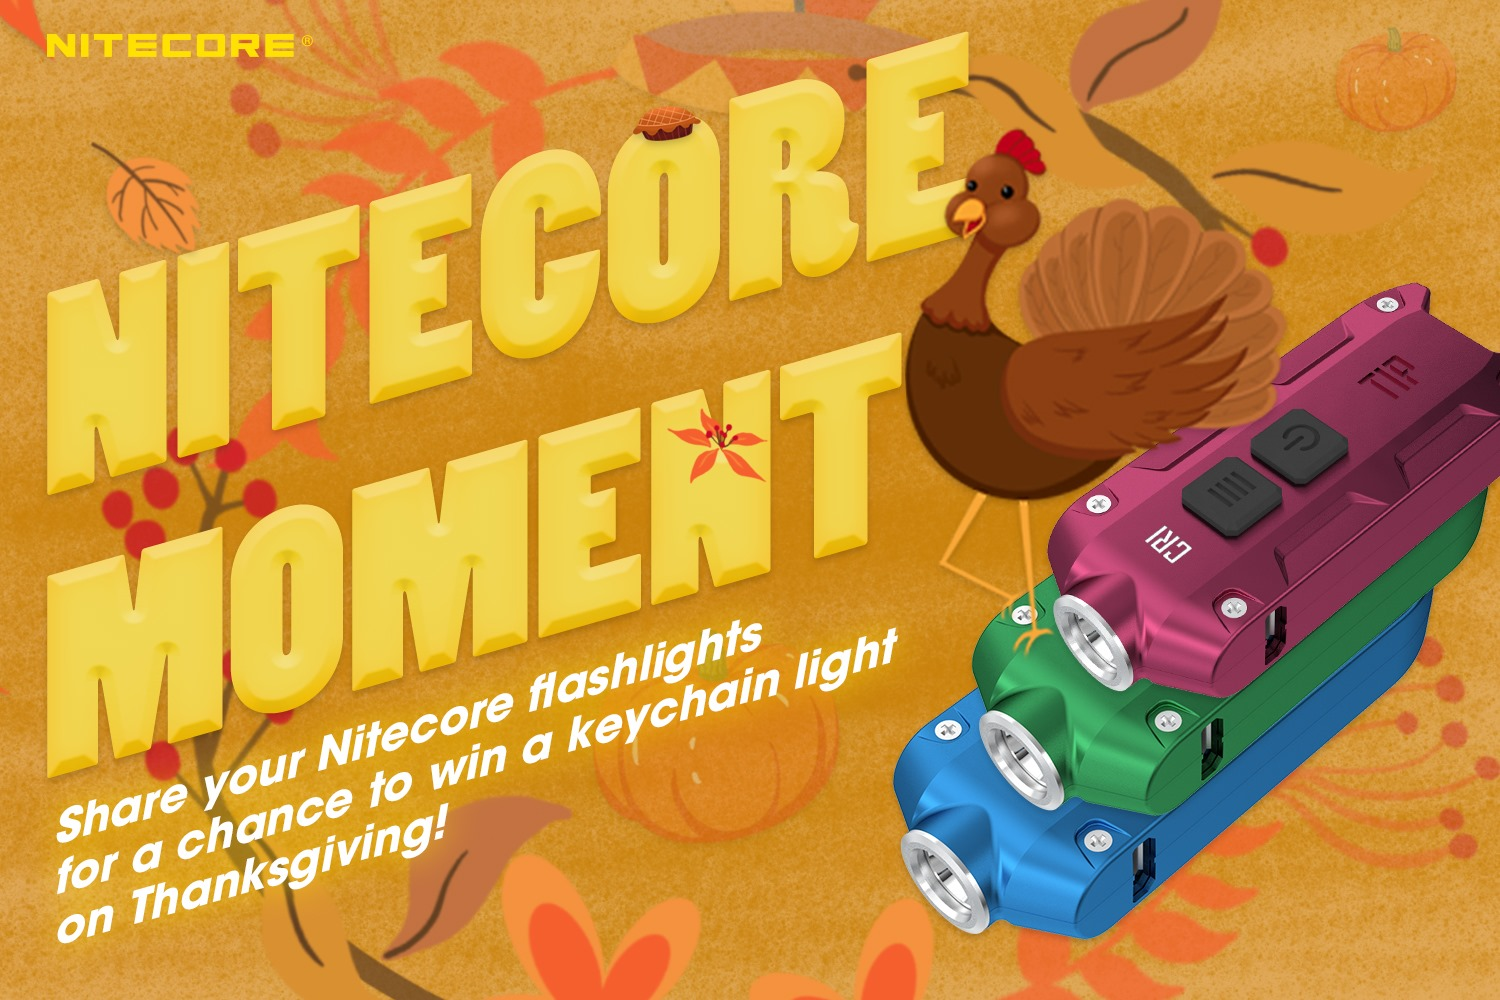 We are thankful to all Nitecore users in 2020. Therefore, we are going to giveaway three keychain lights for your great support!